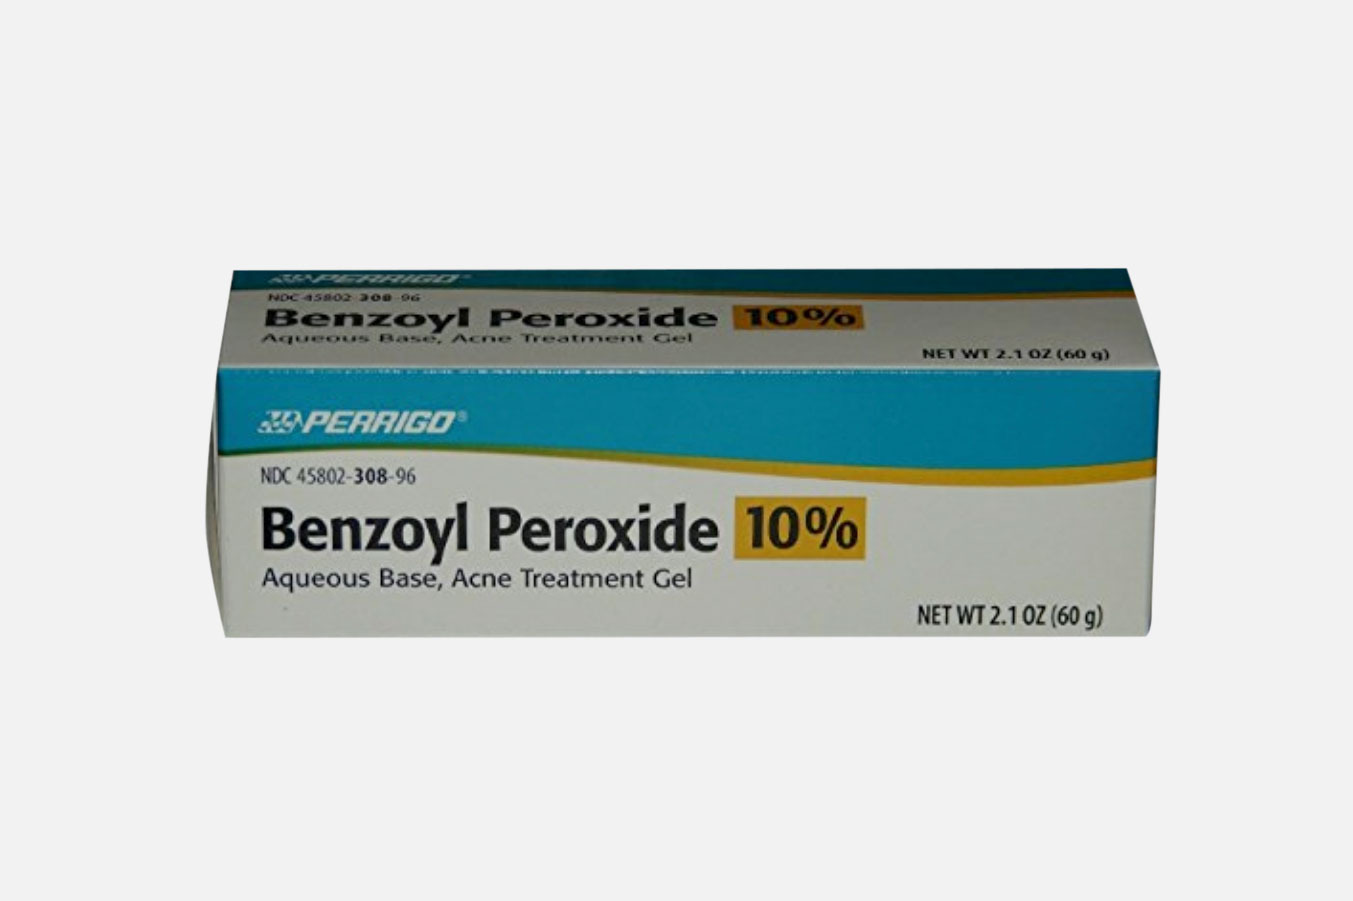 Perrigo 10% Benzoyl Peroxide Acne Treatment Gel